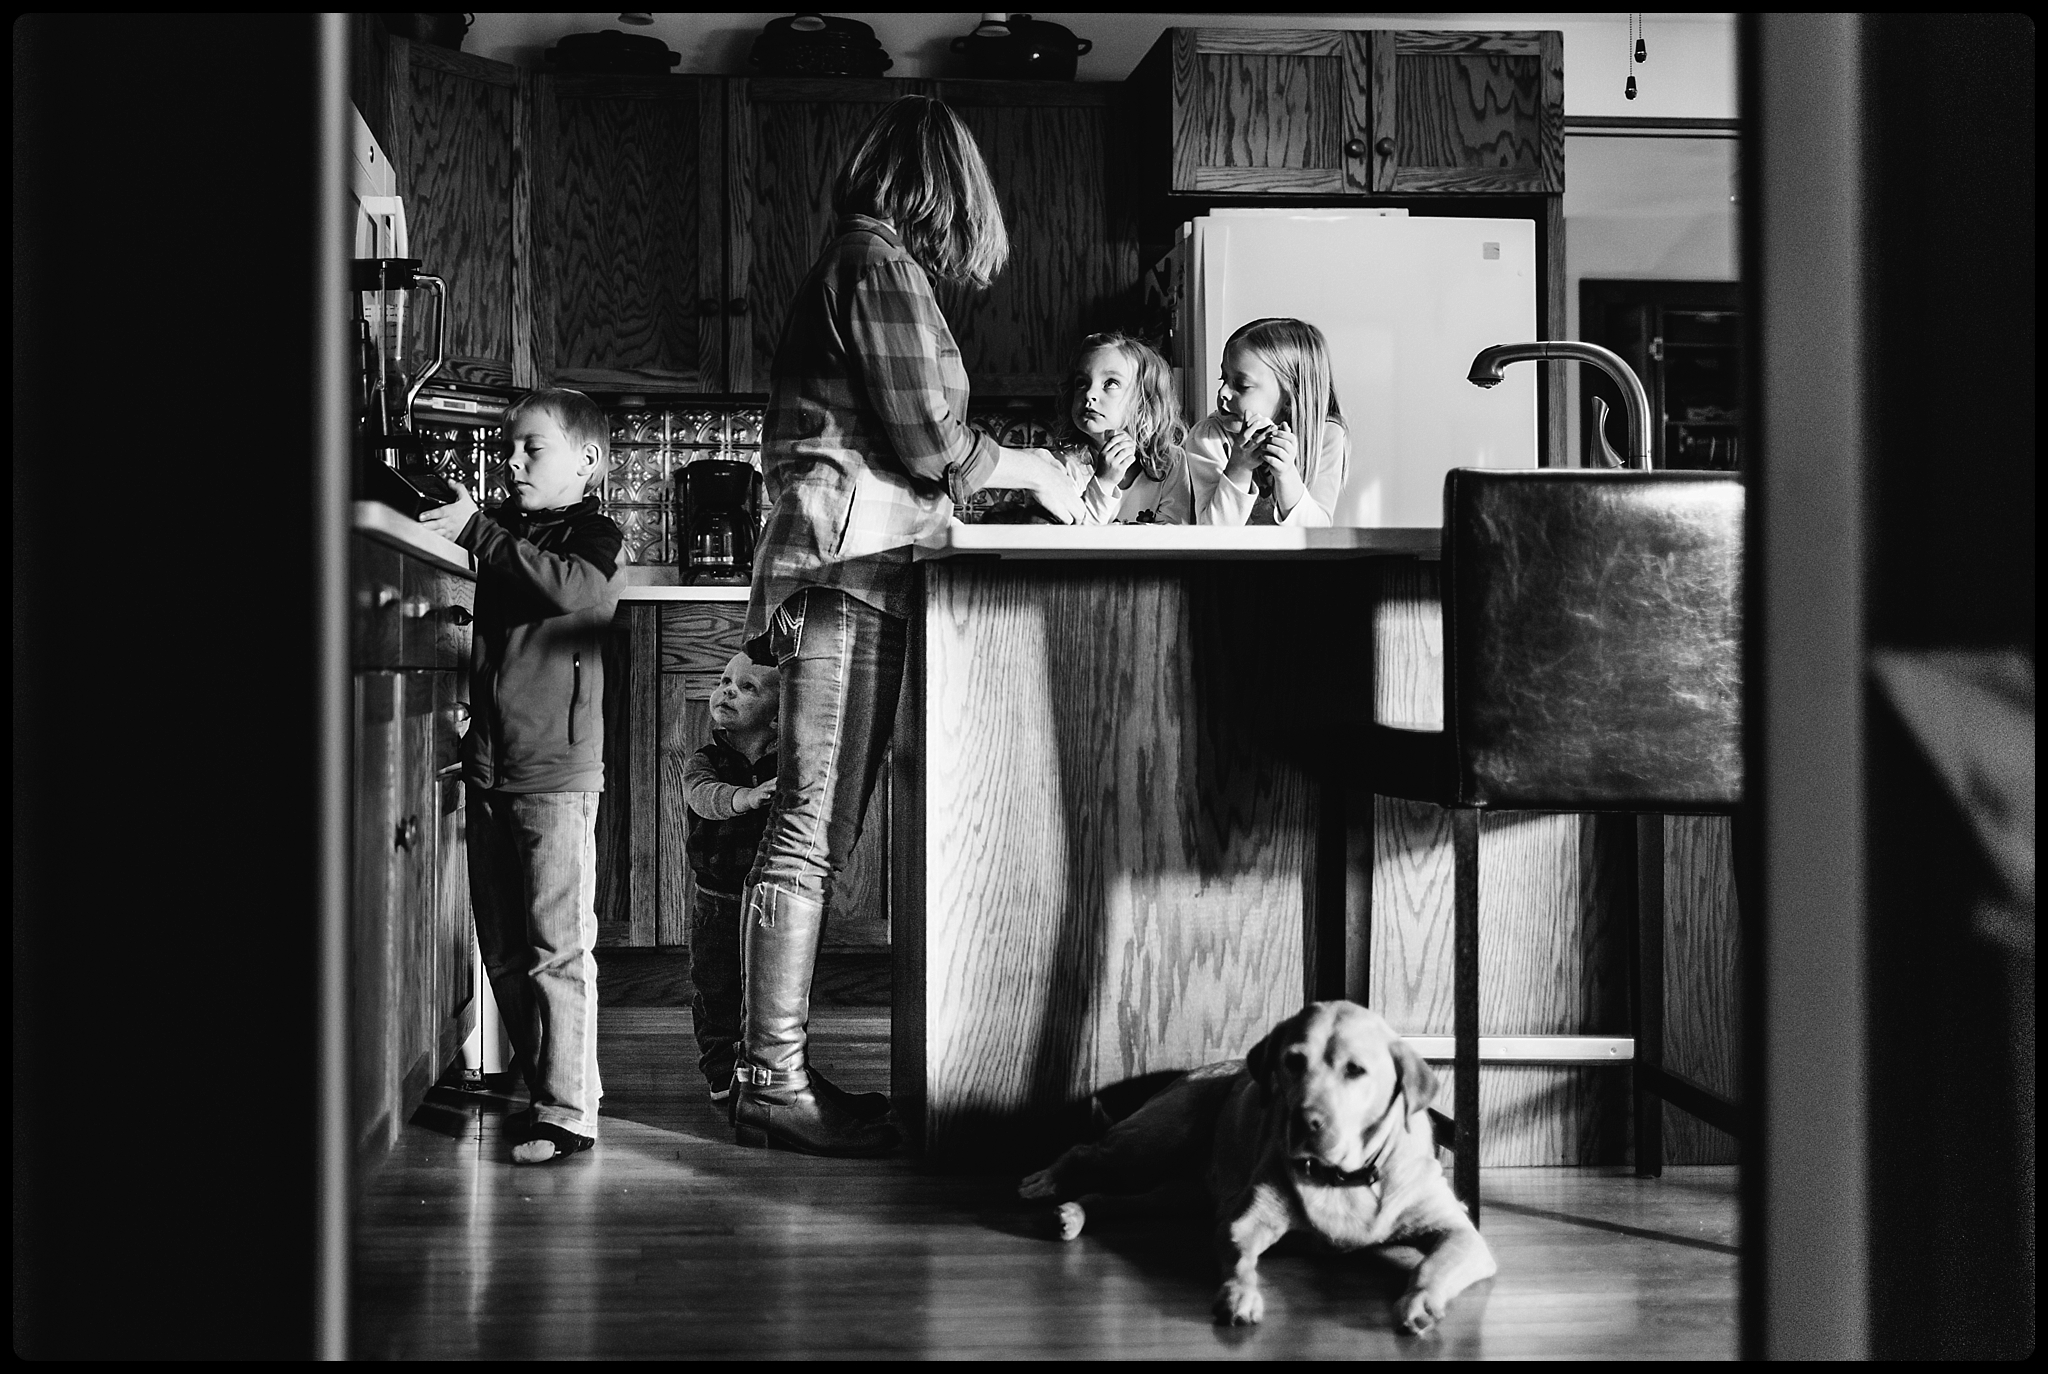 Family hangs out together in kitchen.